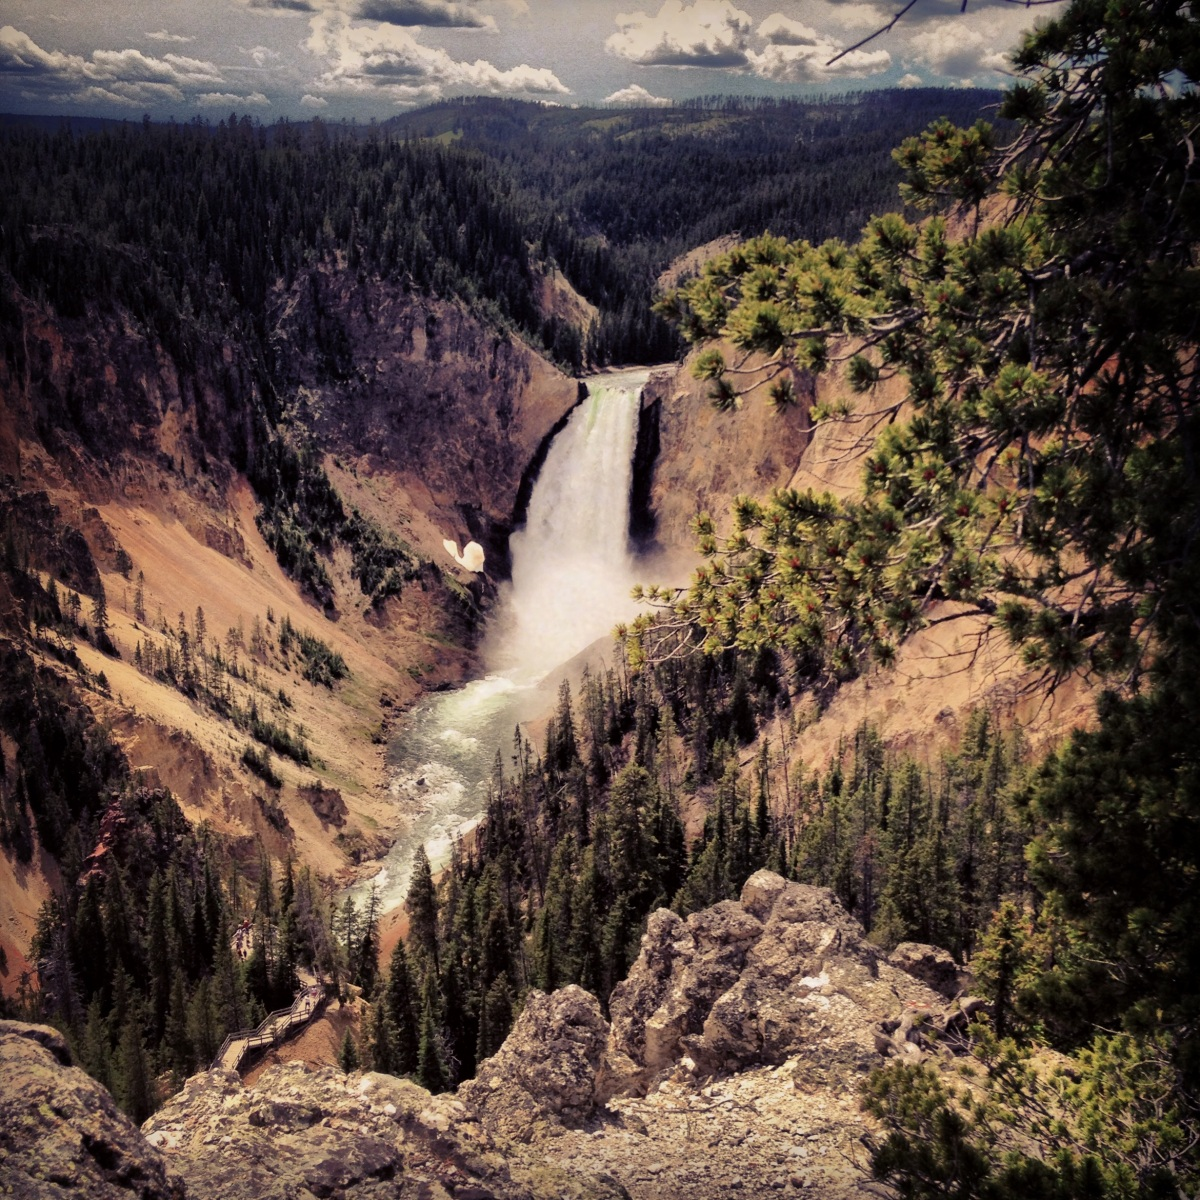 Yellowstone waterfall.